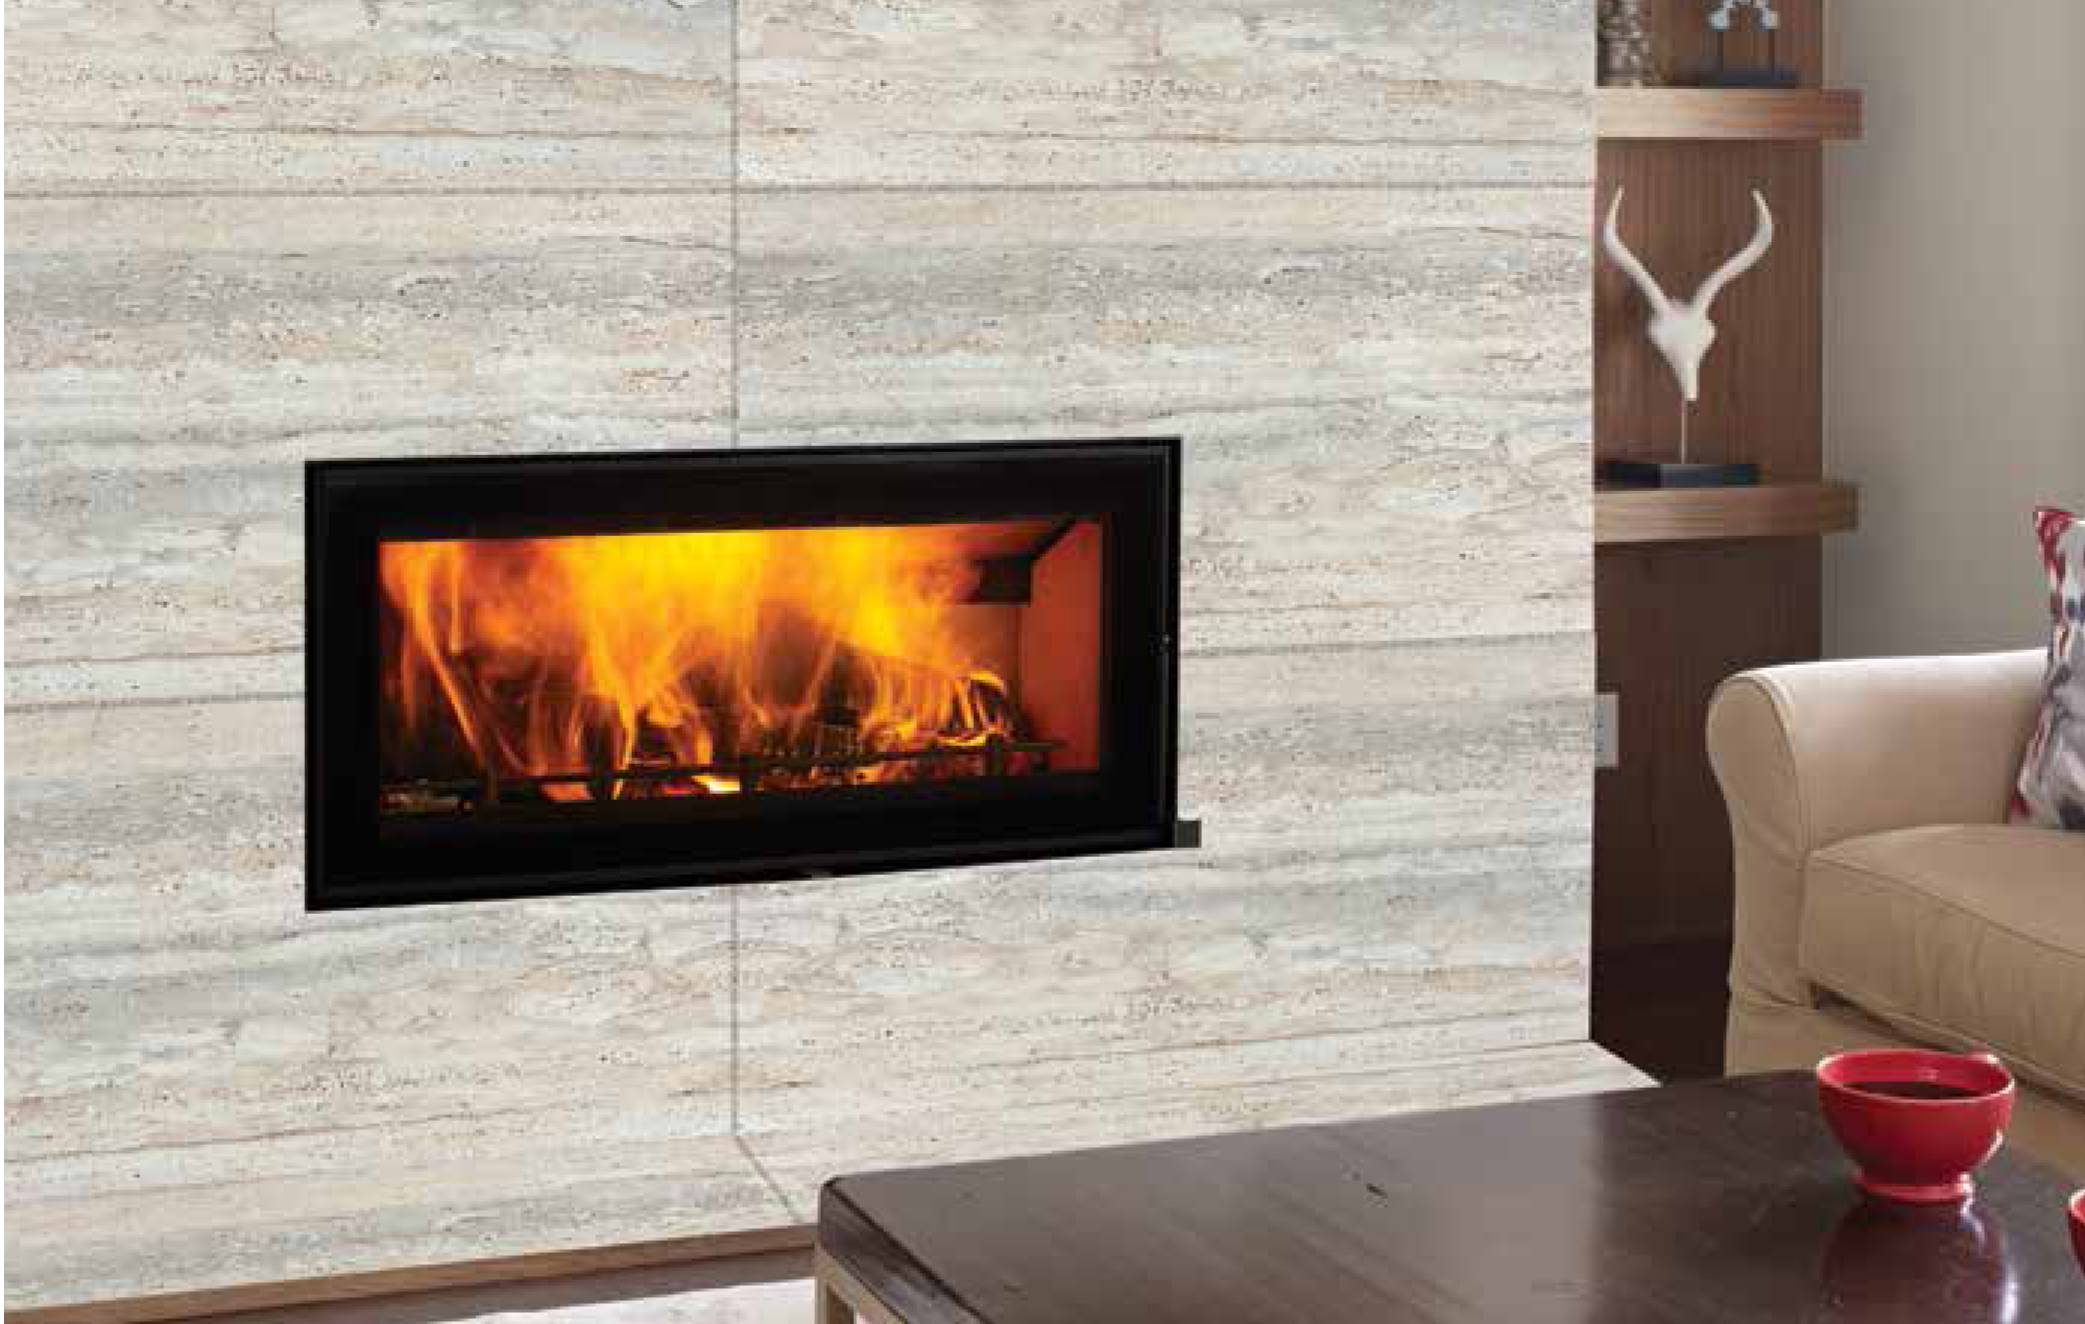 Wood inset fireplaces